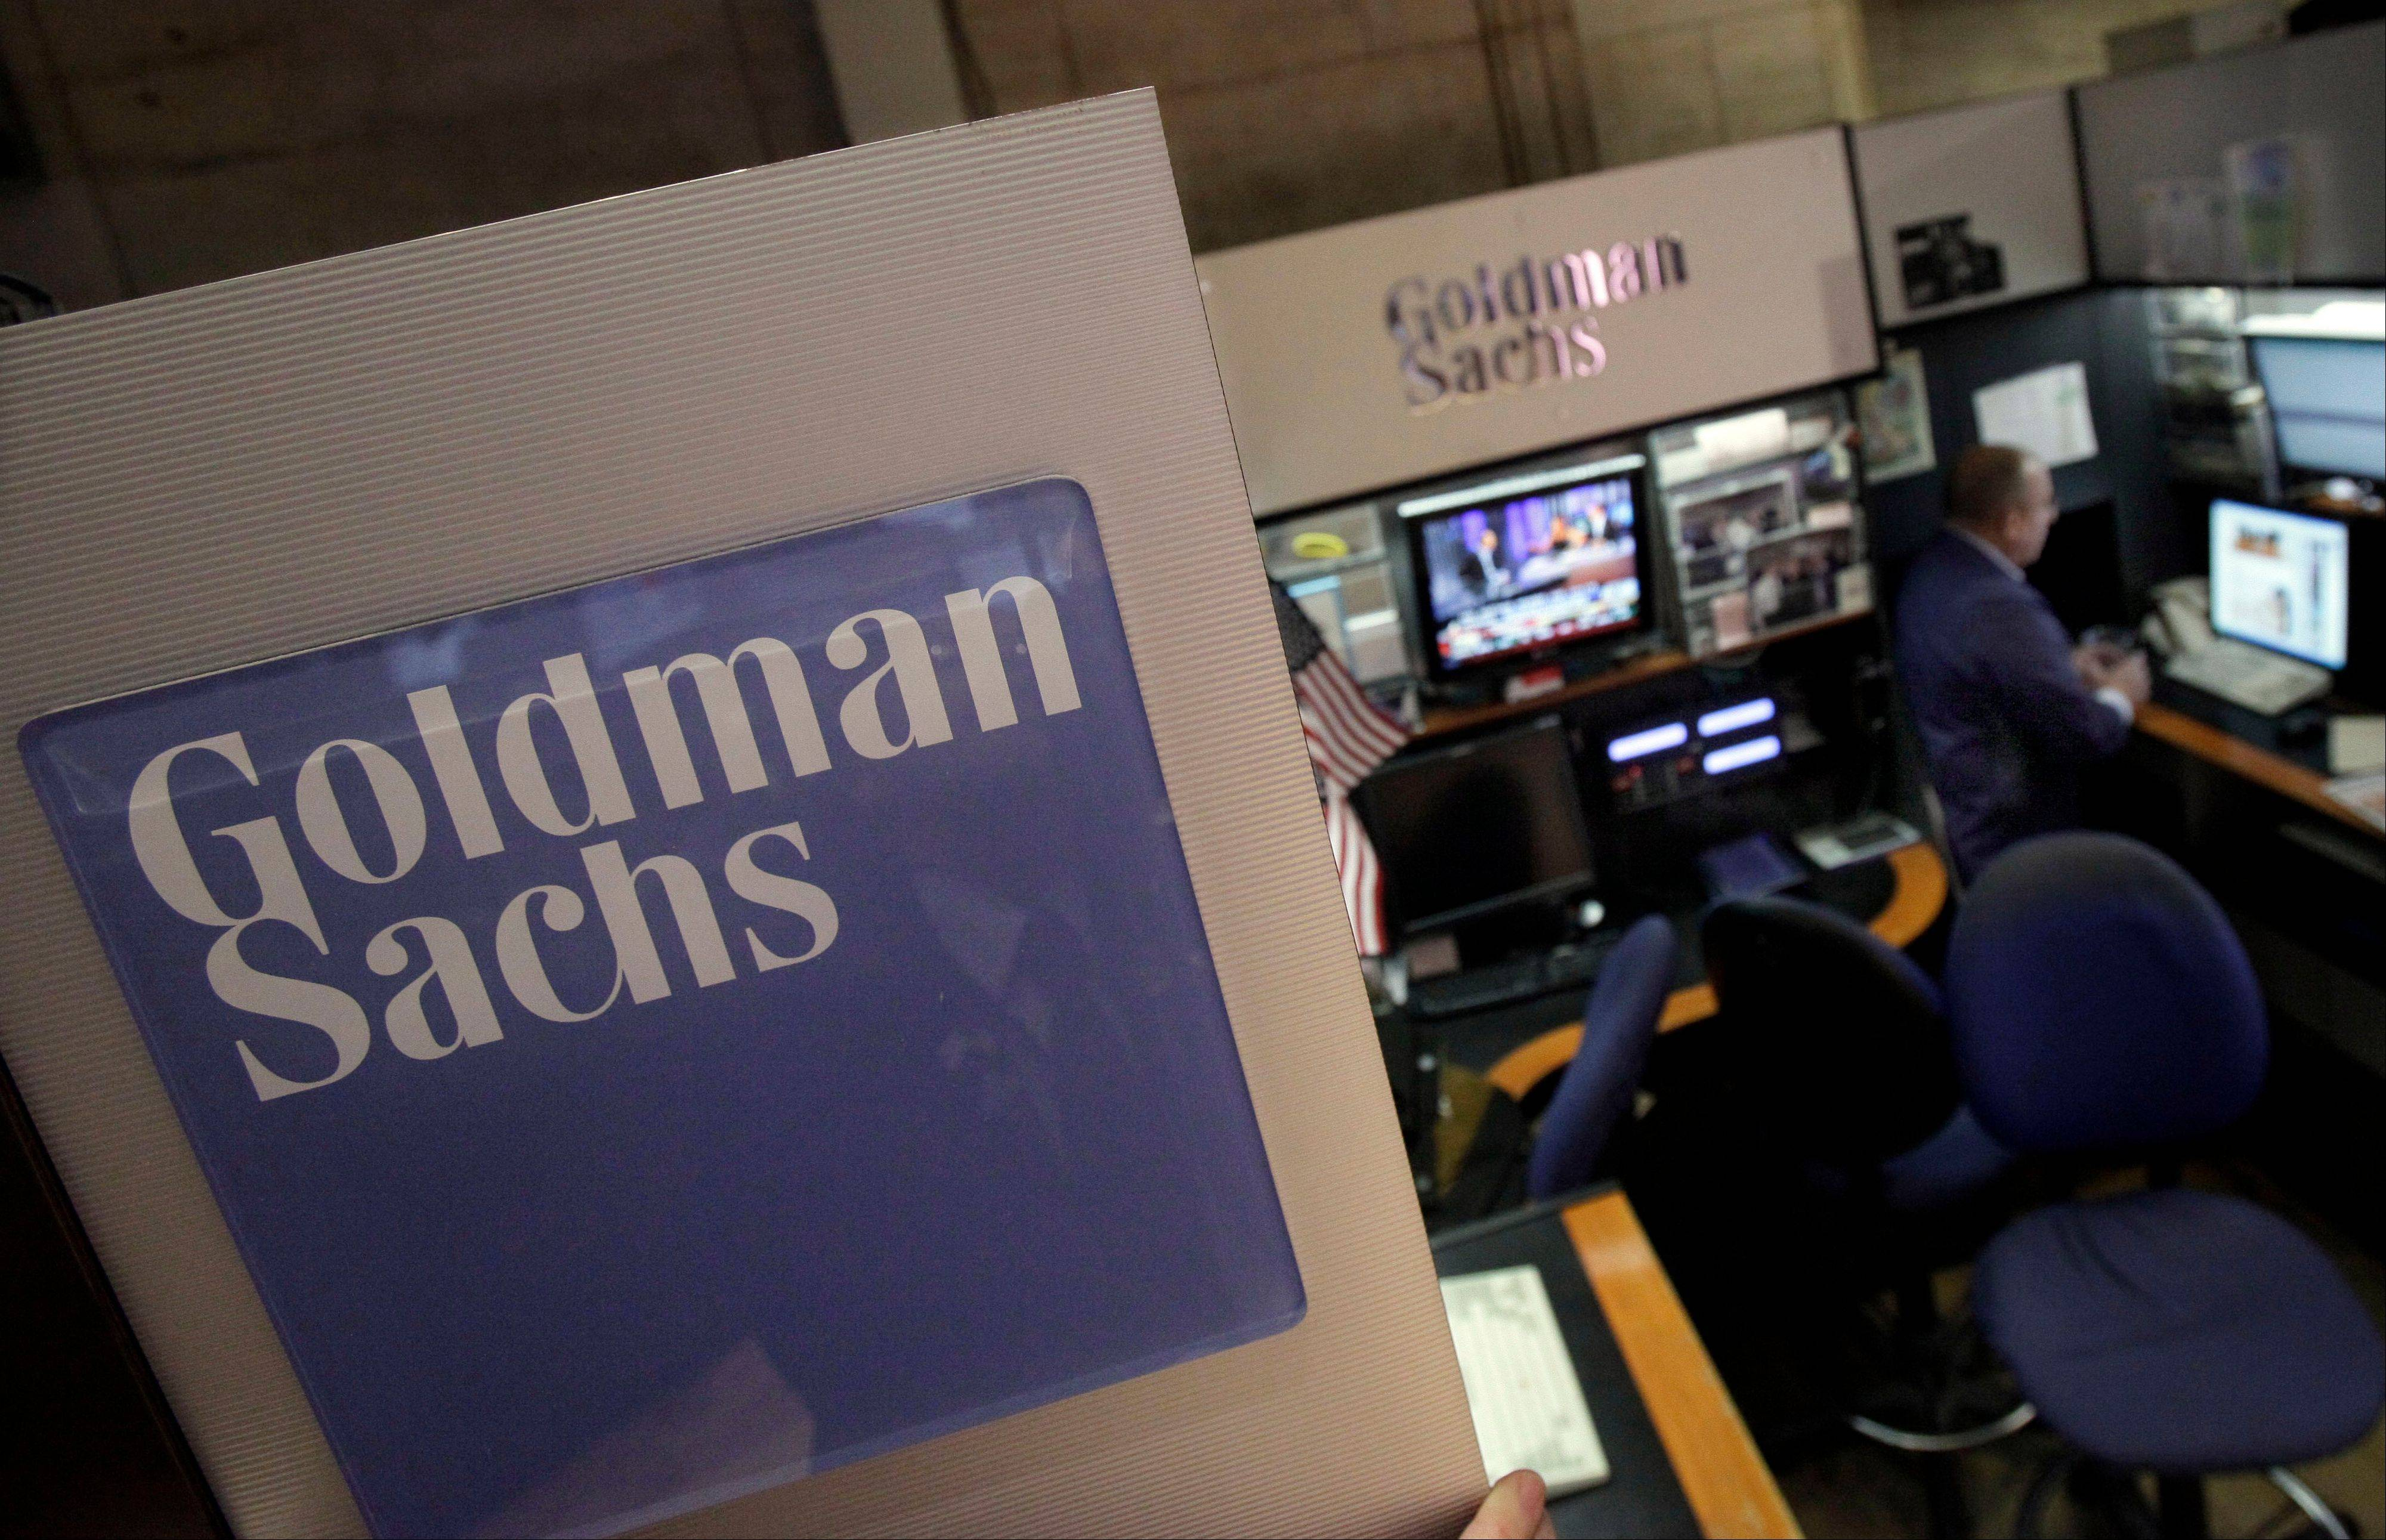 The Justice Department said Thursday it won't prosecute Wall Street firm Goldman Sachs or its employees in a financial fraud probe.